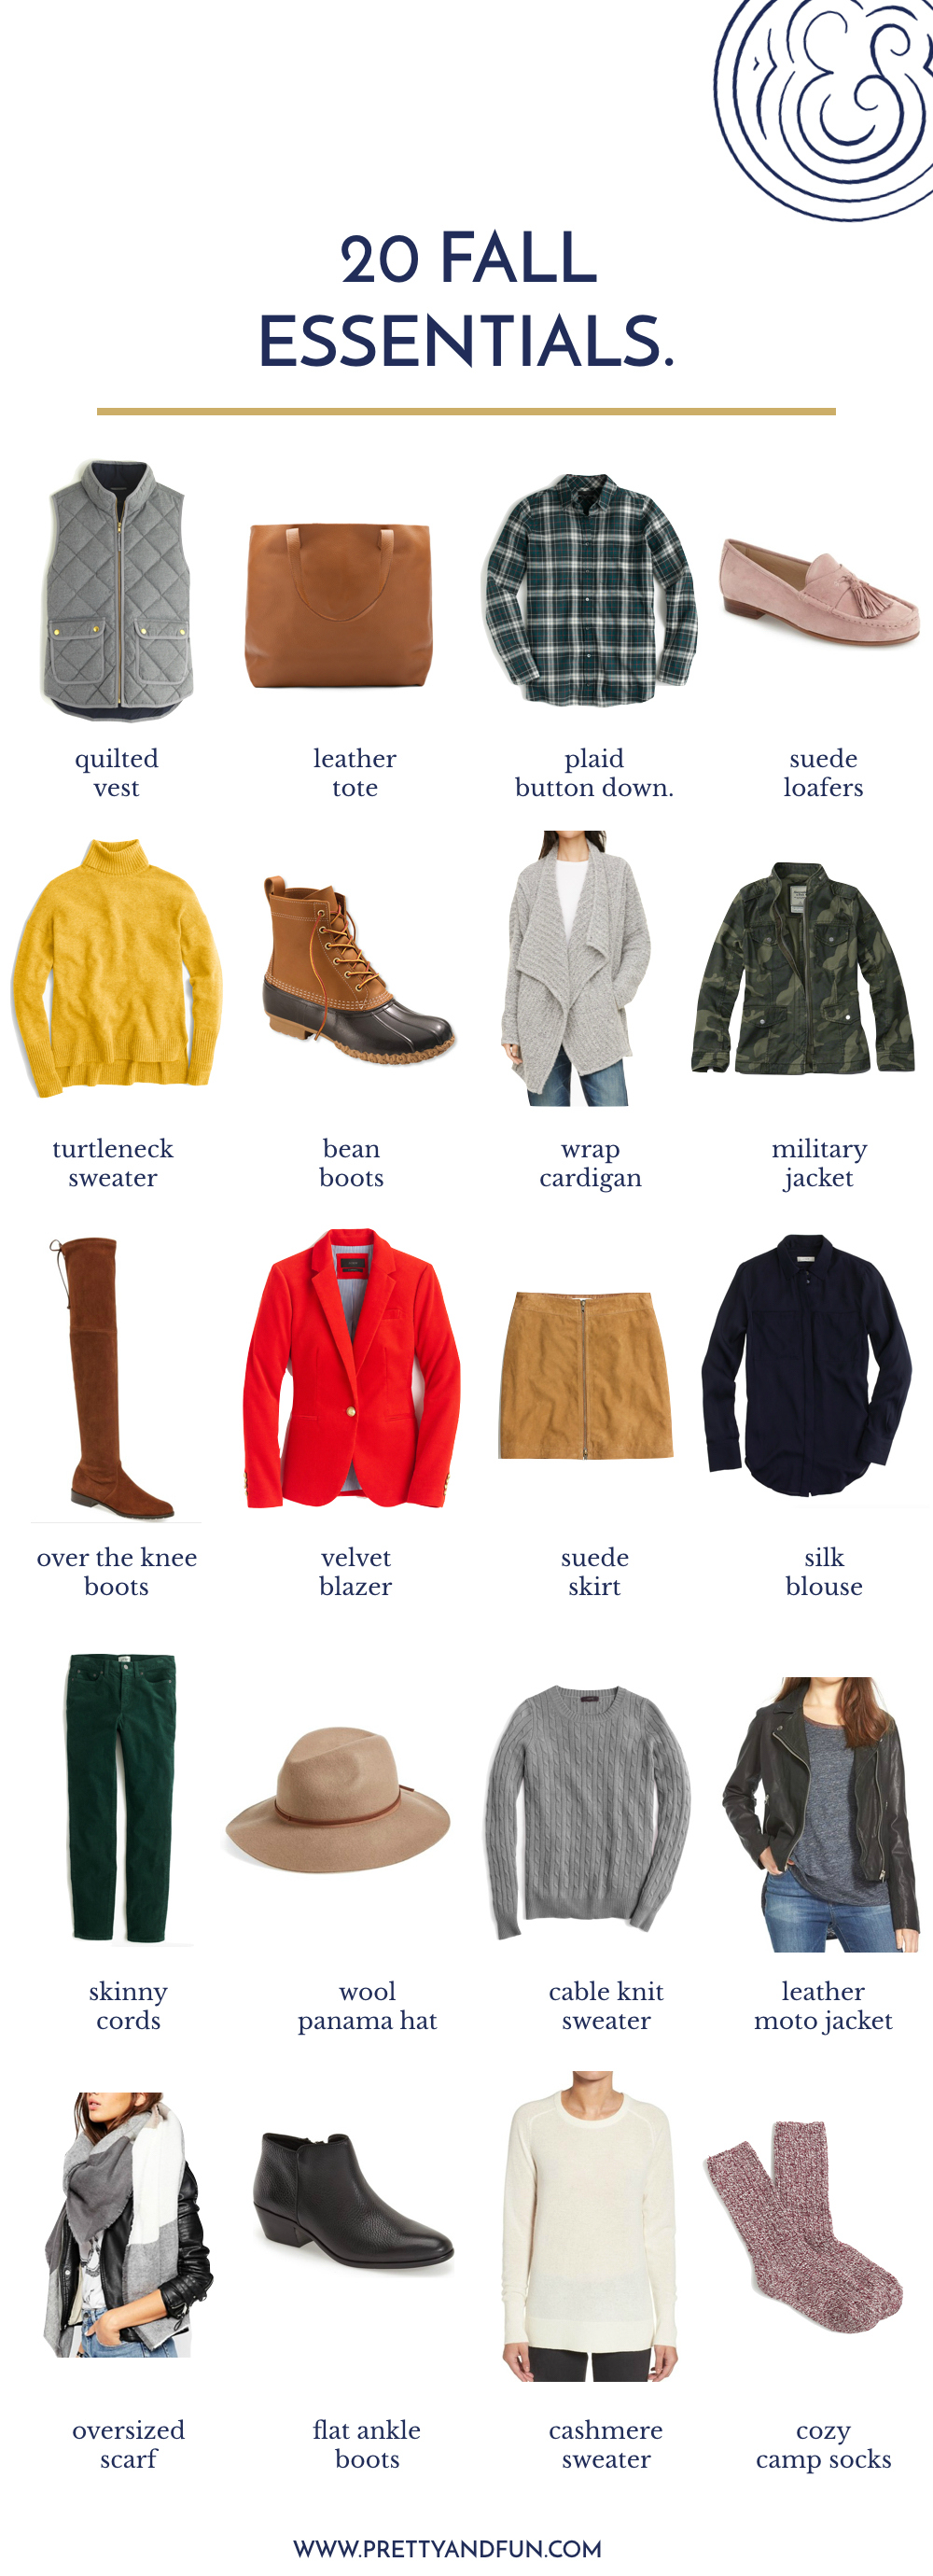 20 Fall Wardrobe Essentials You Need in Your Closet.